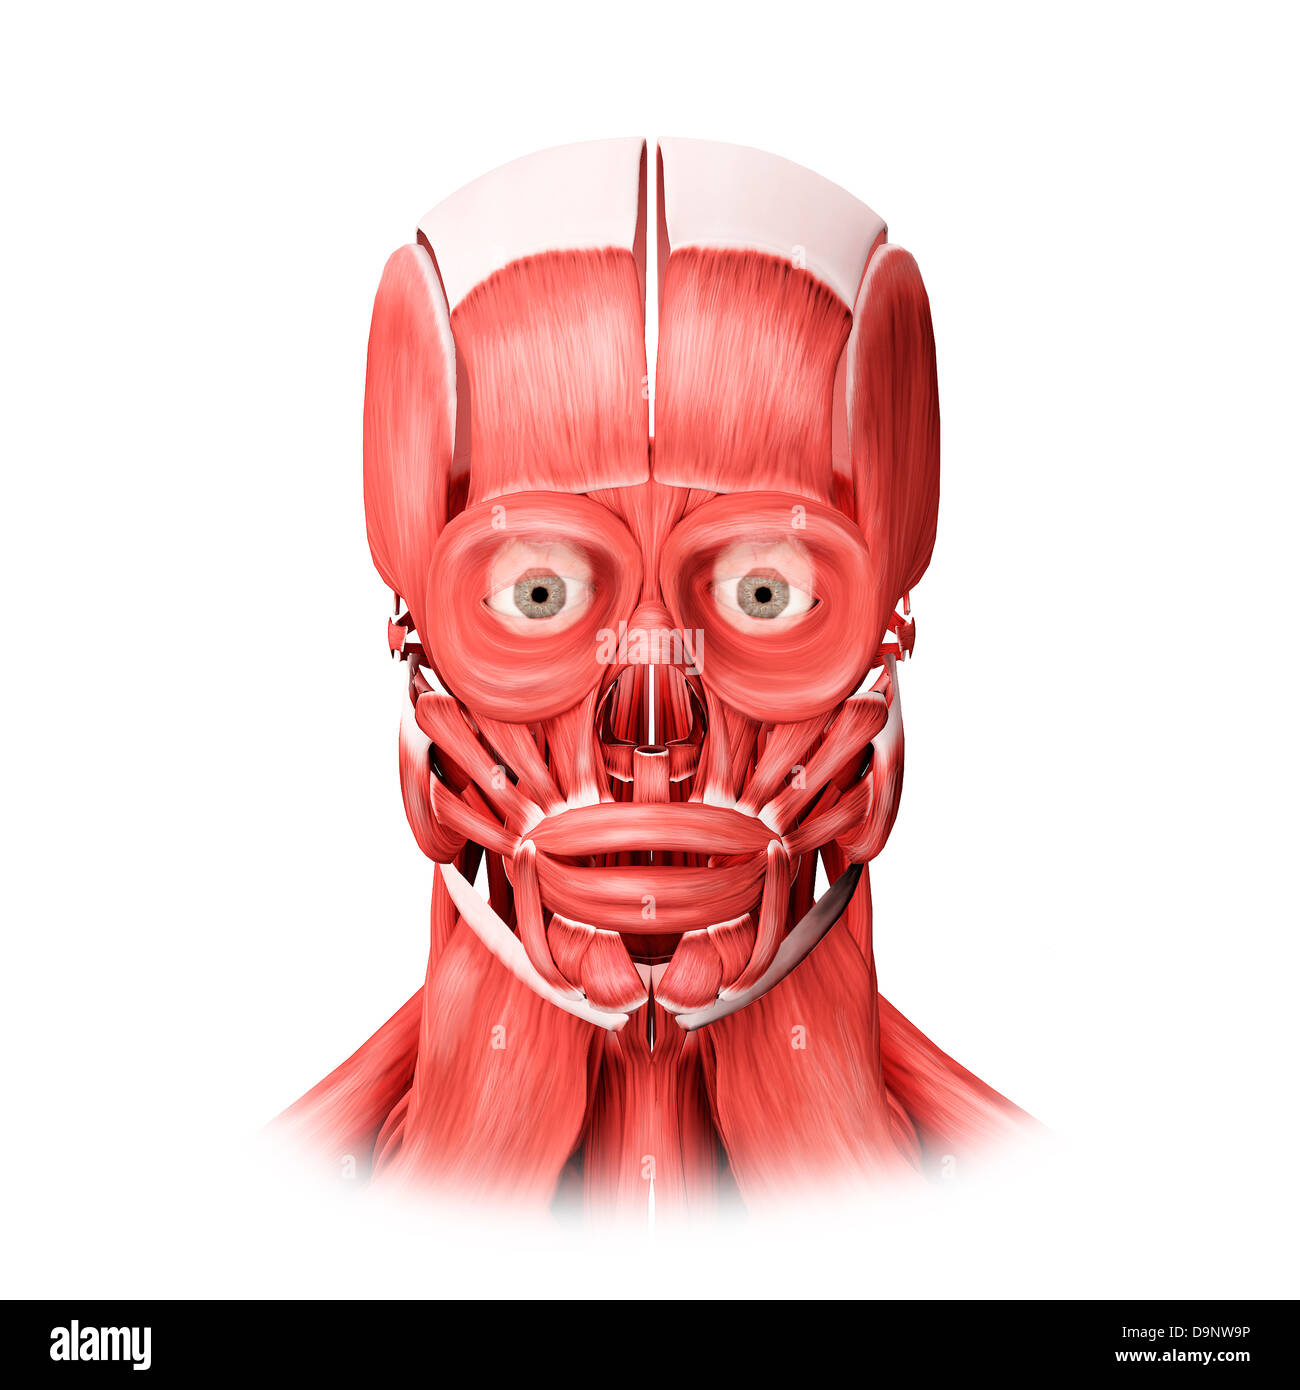 Medical Illustration Of Male Facial Muscles Front View Stock Photo